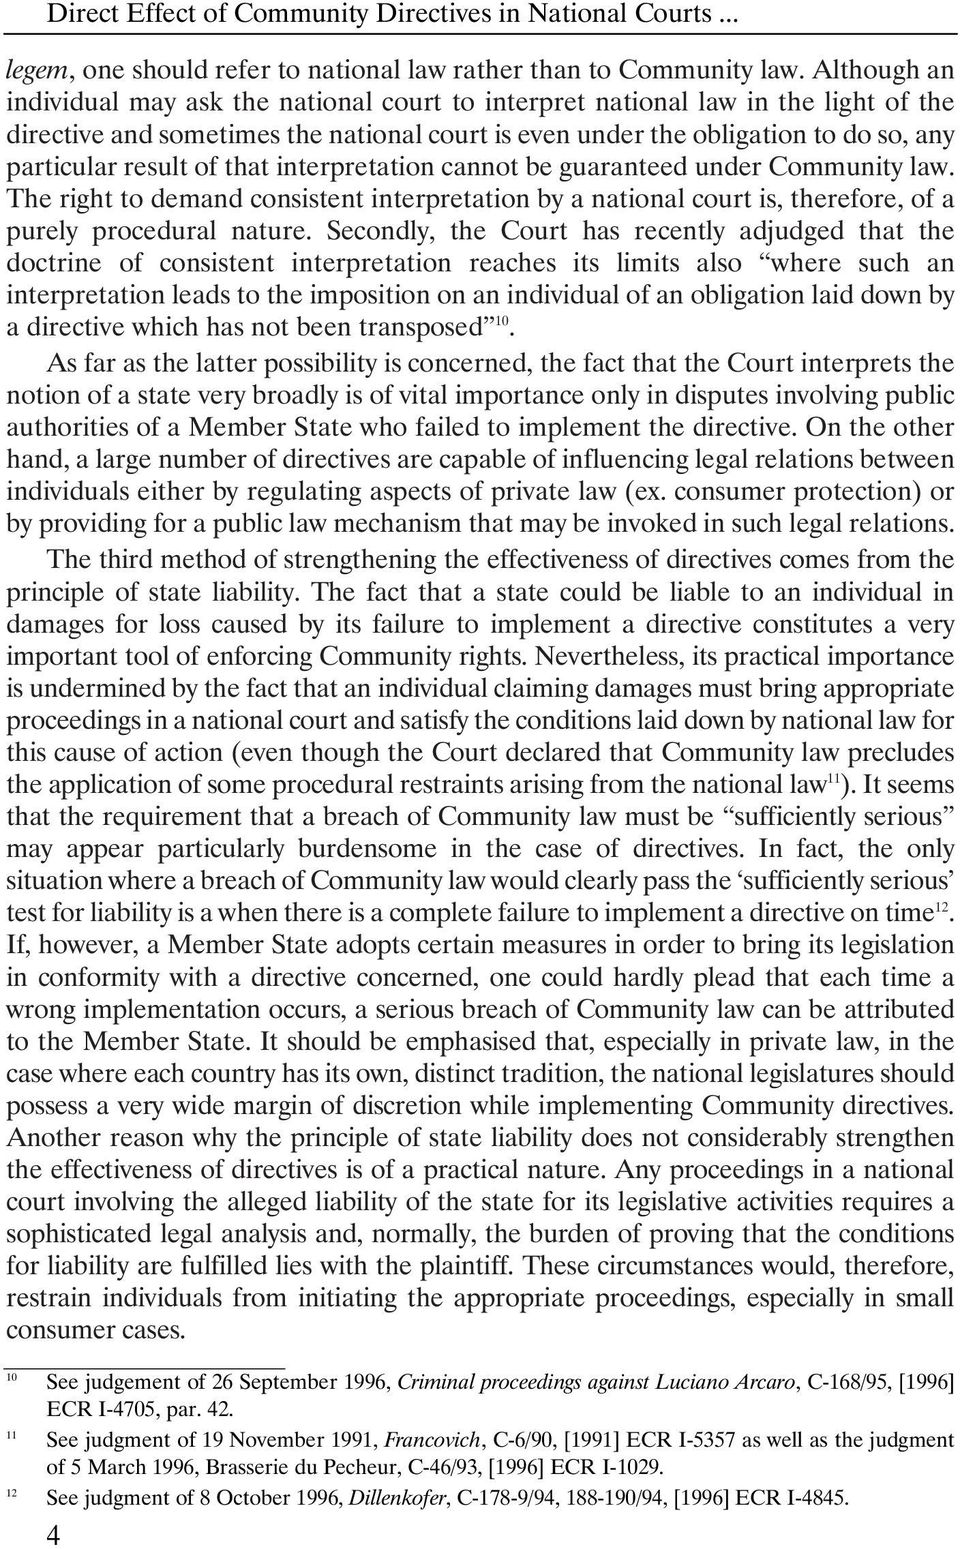 of that interpretation cannot be guaranteed under Community law. The right to demand consistent interpretation by a national court is, therefore, of a purely procedural nature.